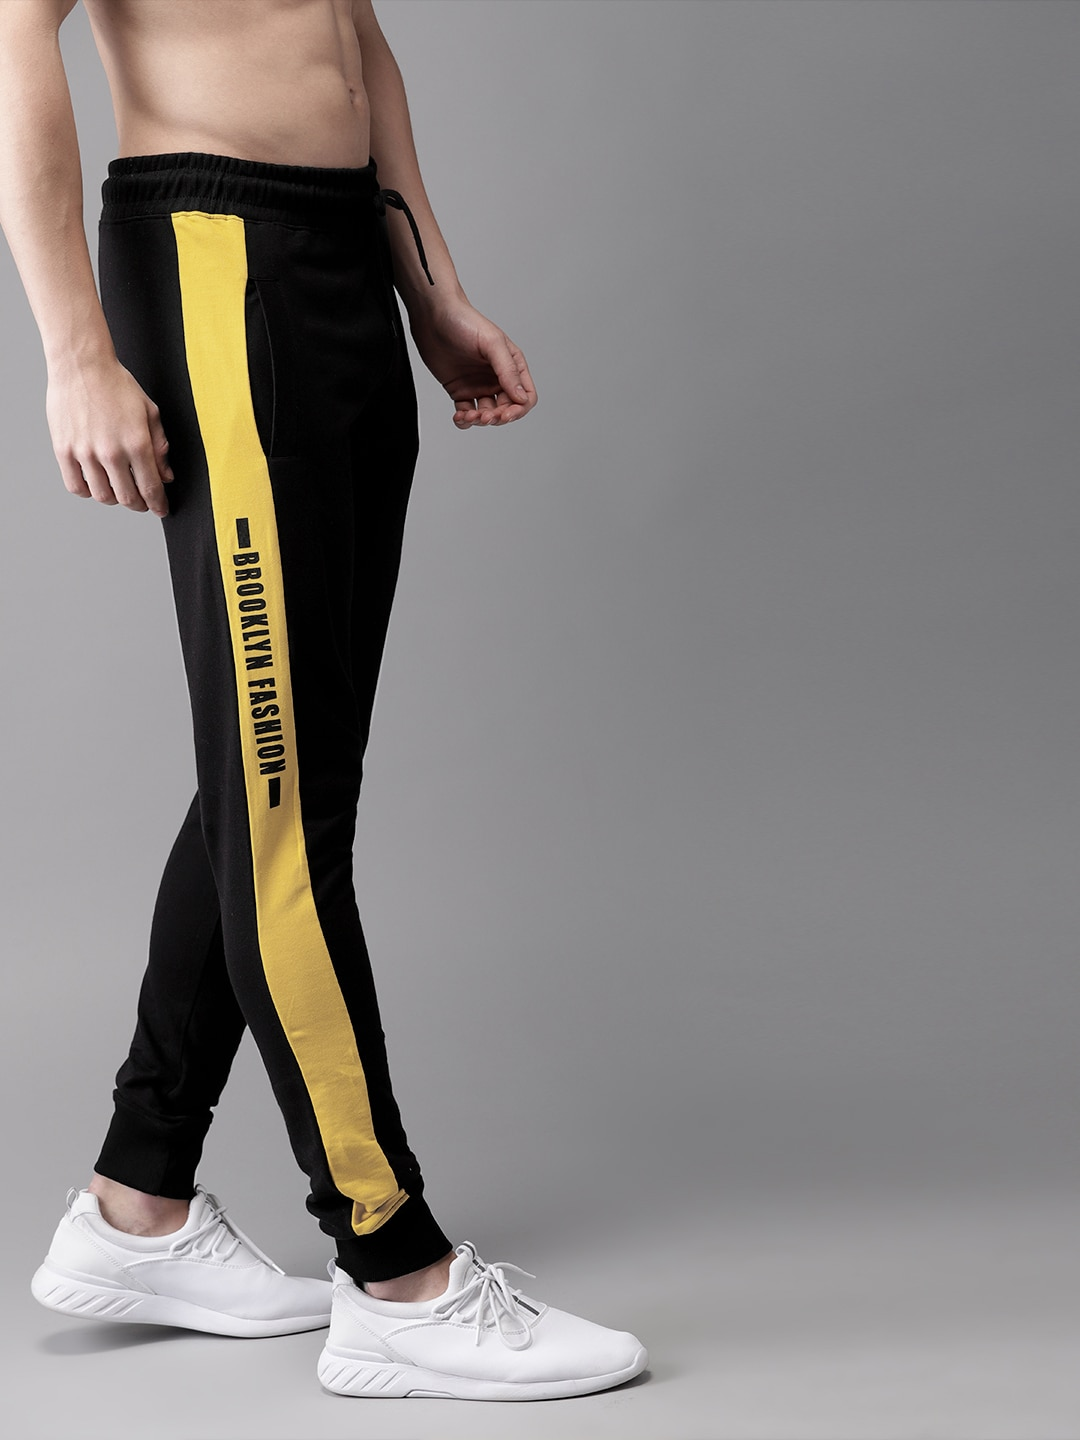 79ae12a2a5 Joggers - Buy Joggers Pants For Men and Women Online - Myntra